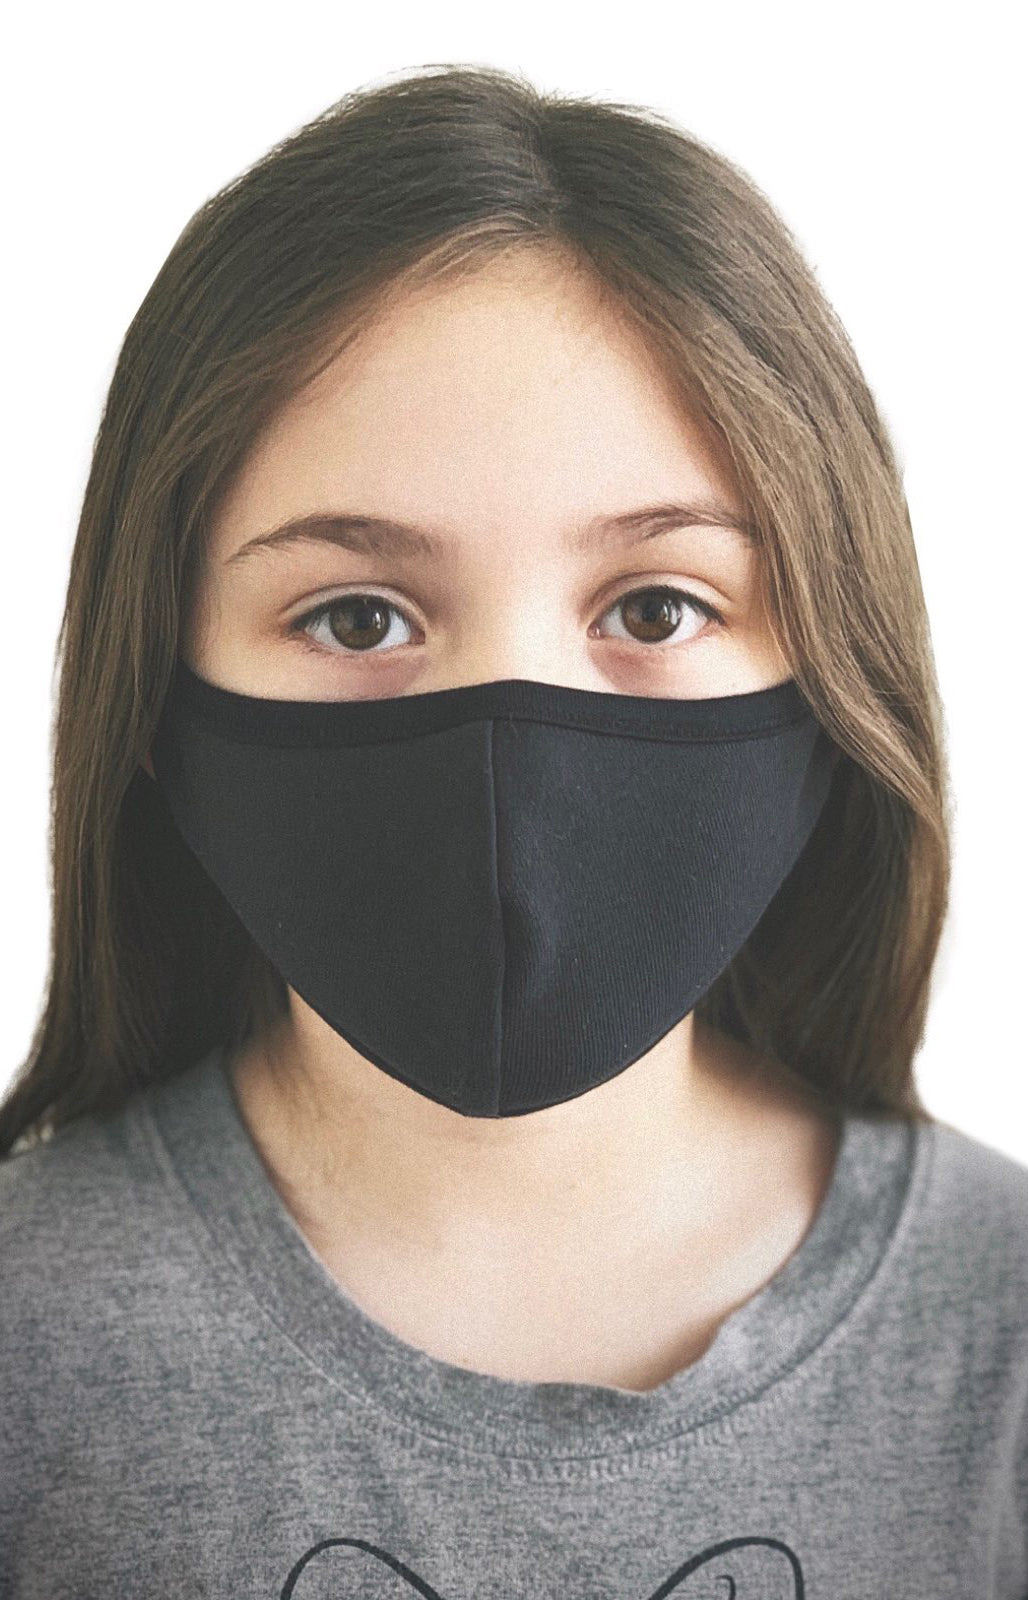 Protective Mask For Children